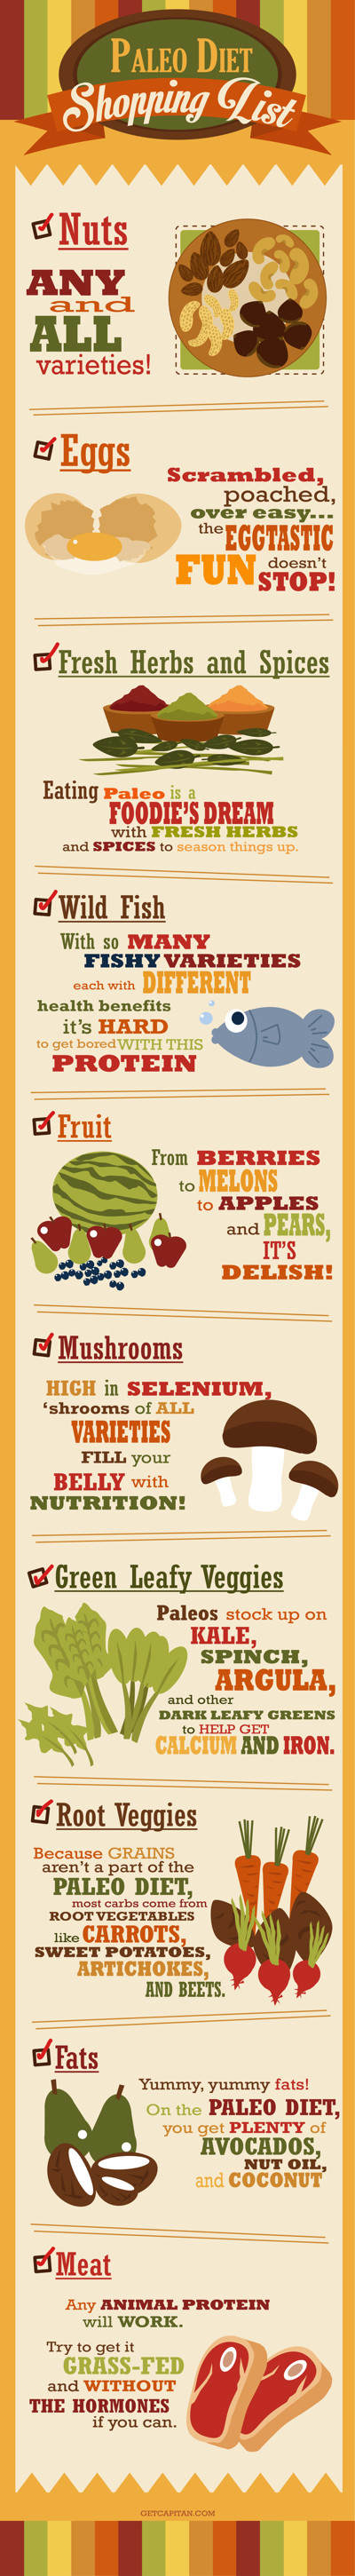 Paleo Diet Food Shopping List